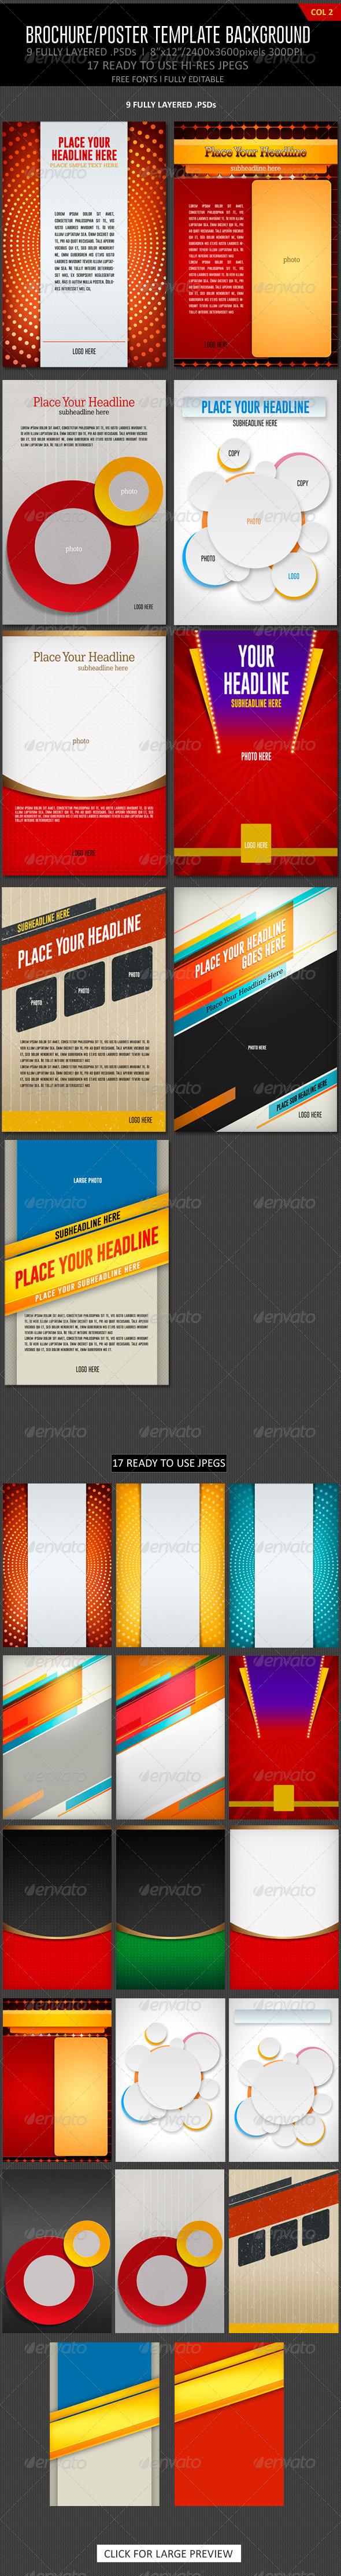 Brochure/Poster template background Col2 - Backgrounds Graphics